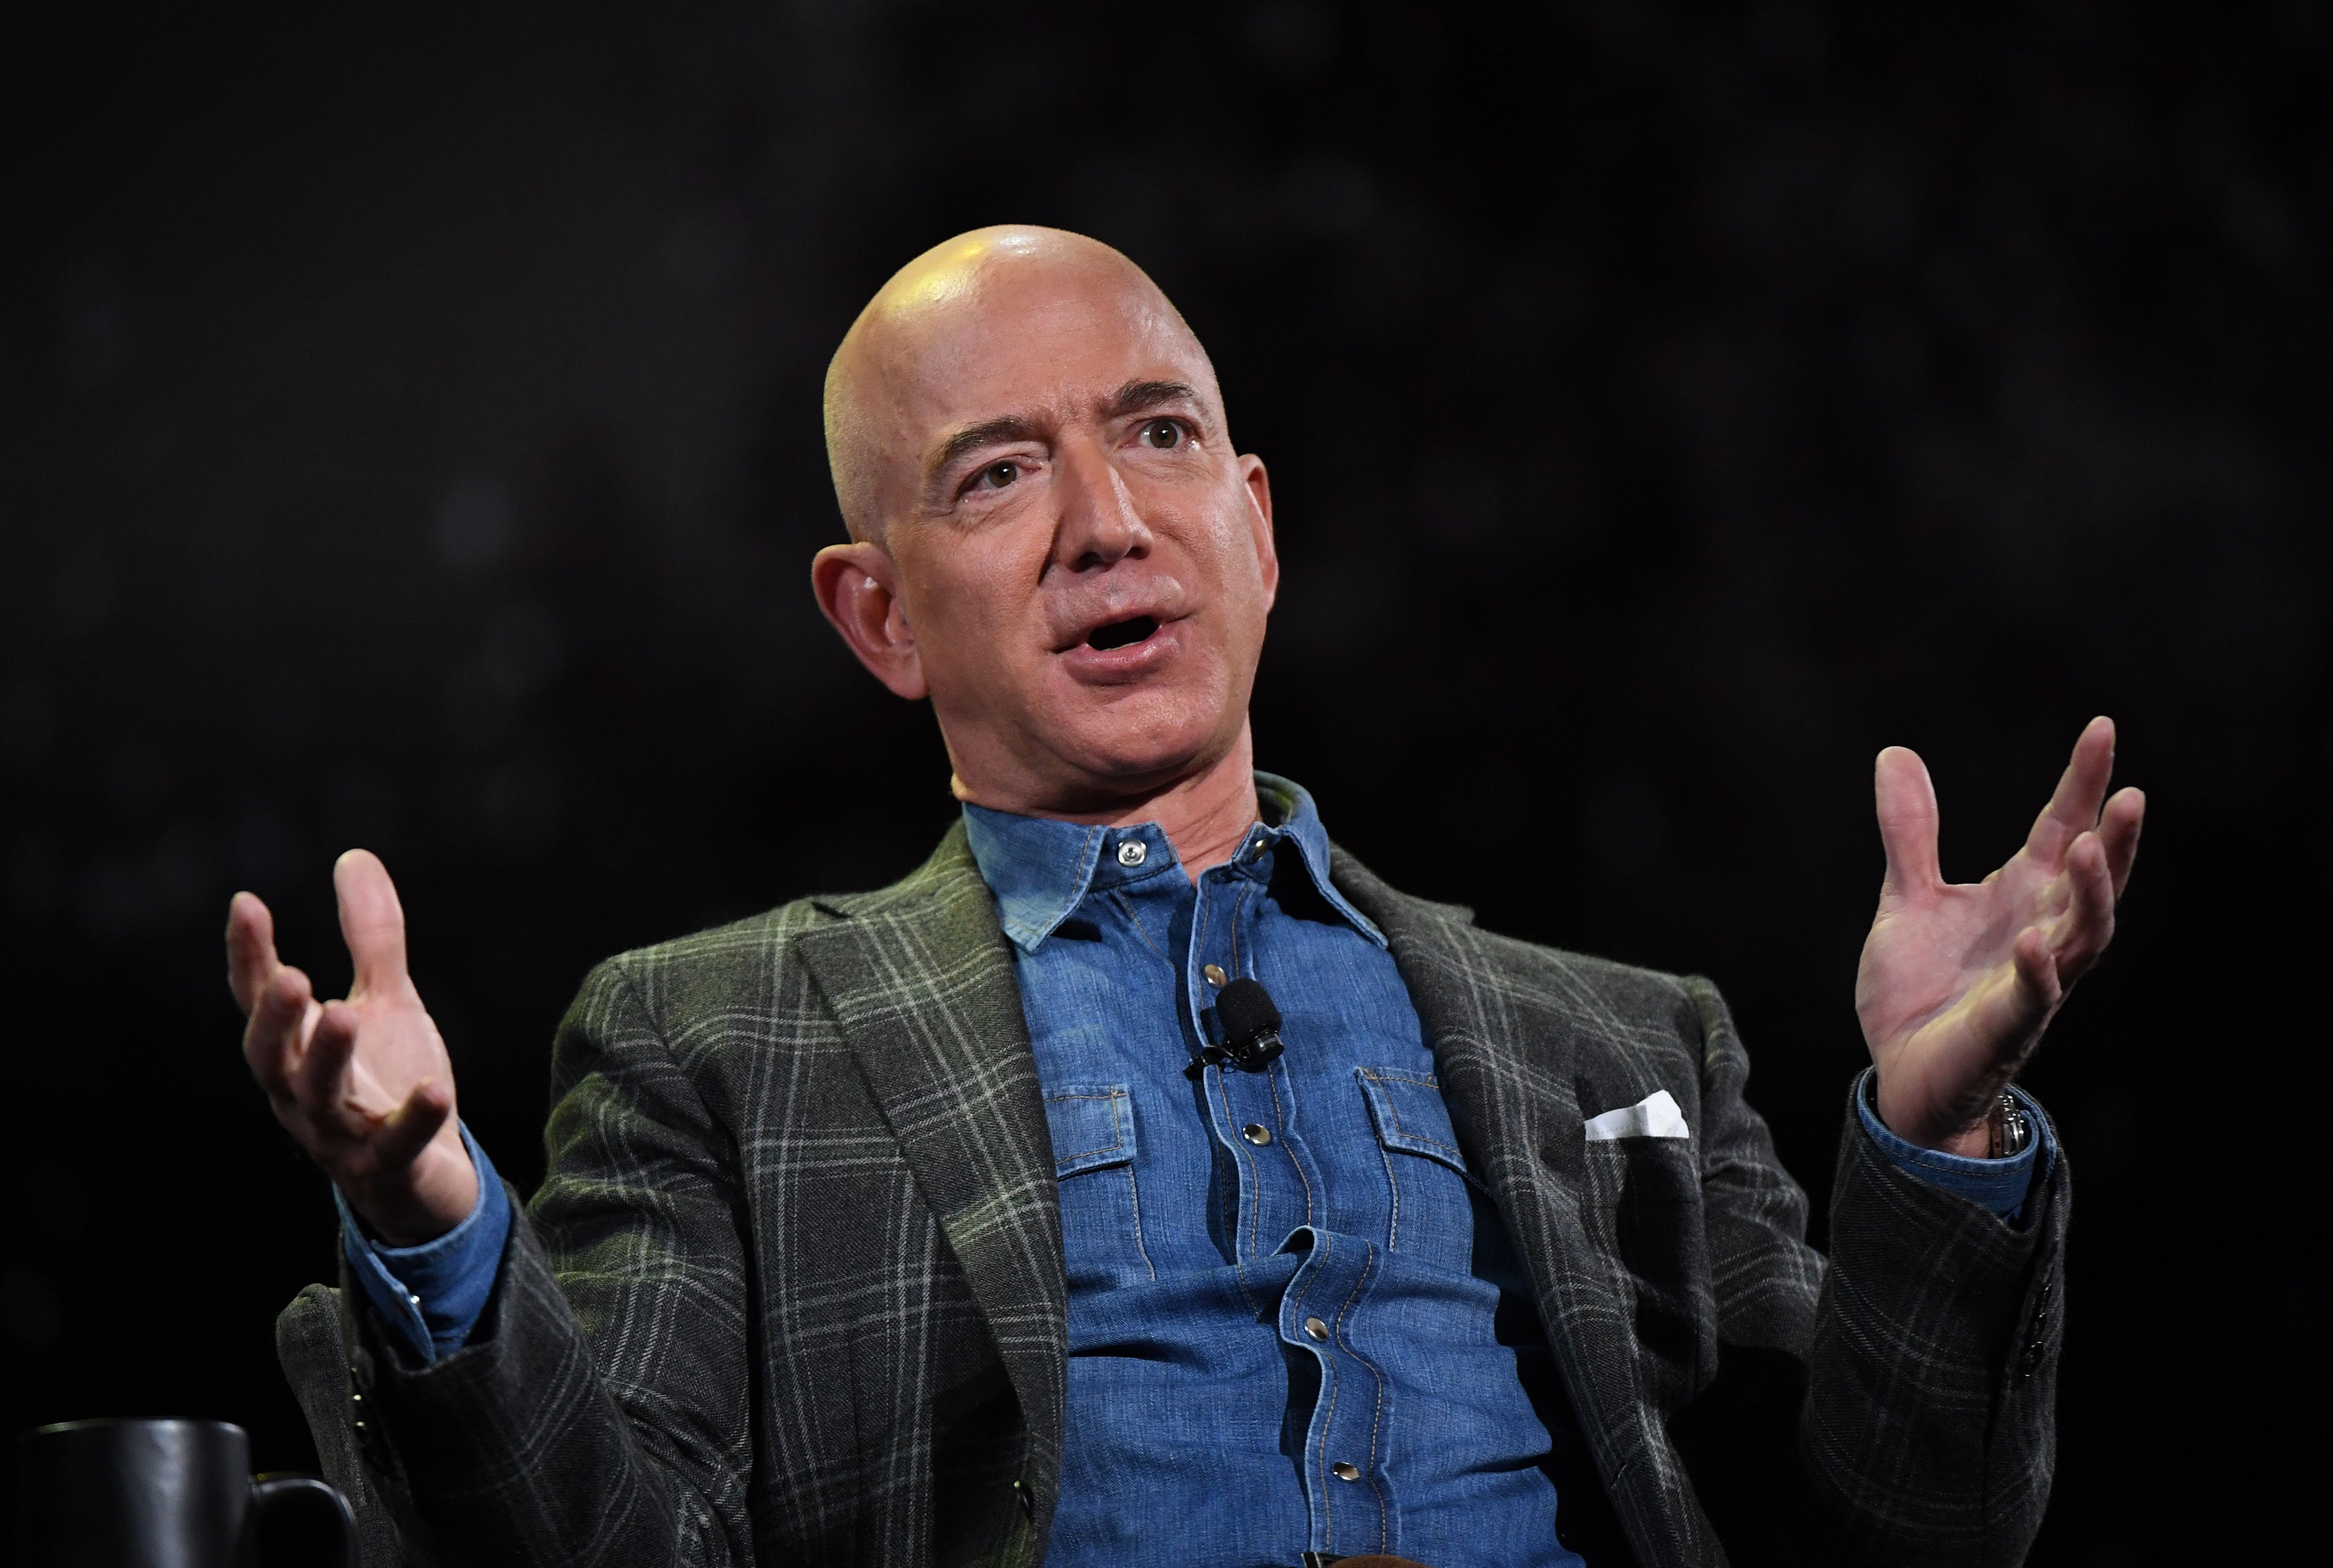 Amazon CEO Jeff Bezos gesticulating while speaking onstage at a company event.